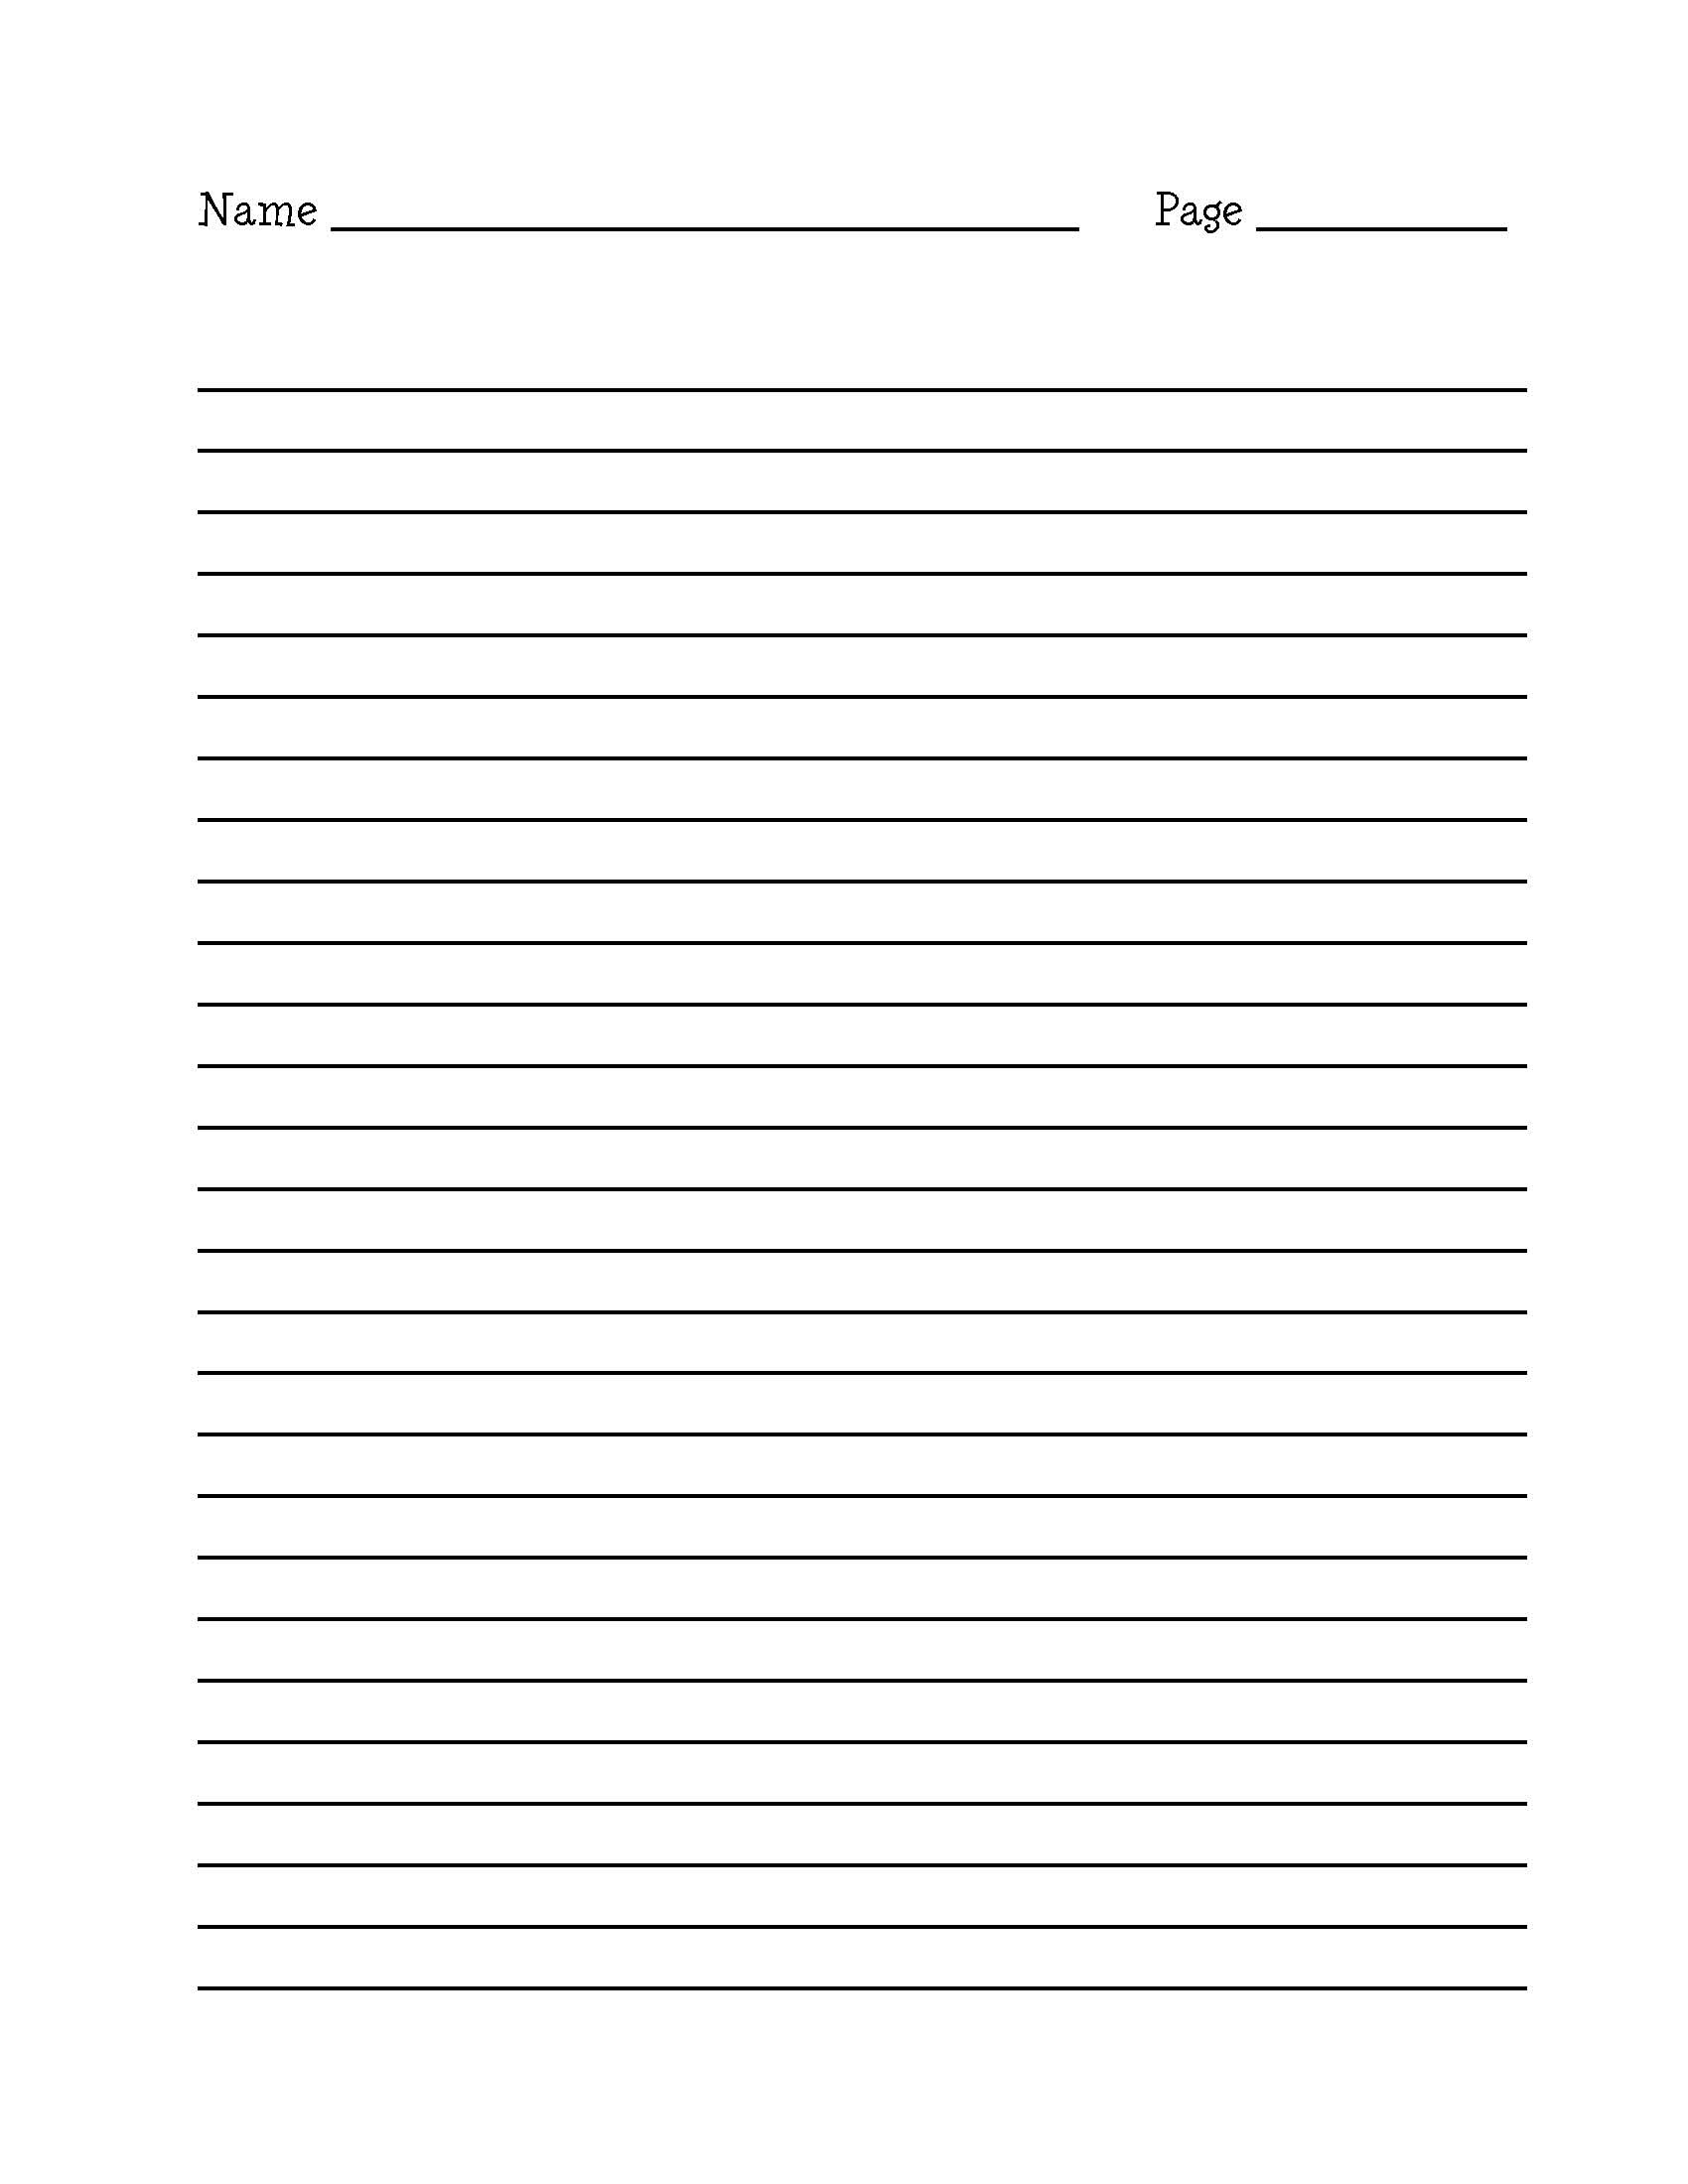 15+ Download A4 Lined Paper Templates | All Form Templates - Free Printable Lined Writing Paper